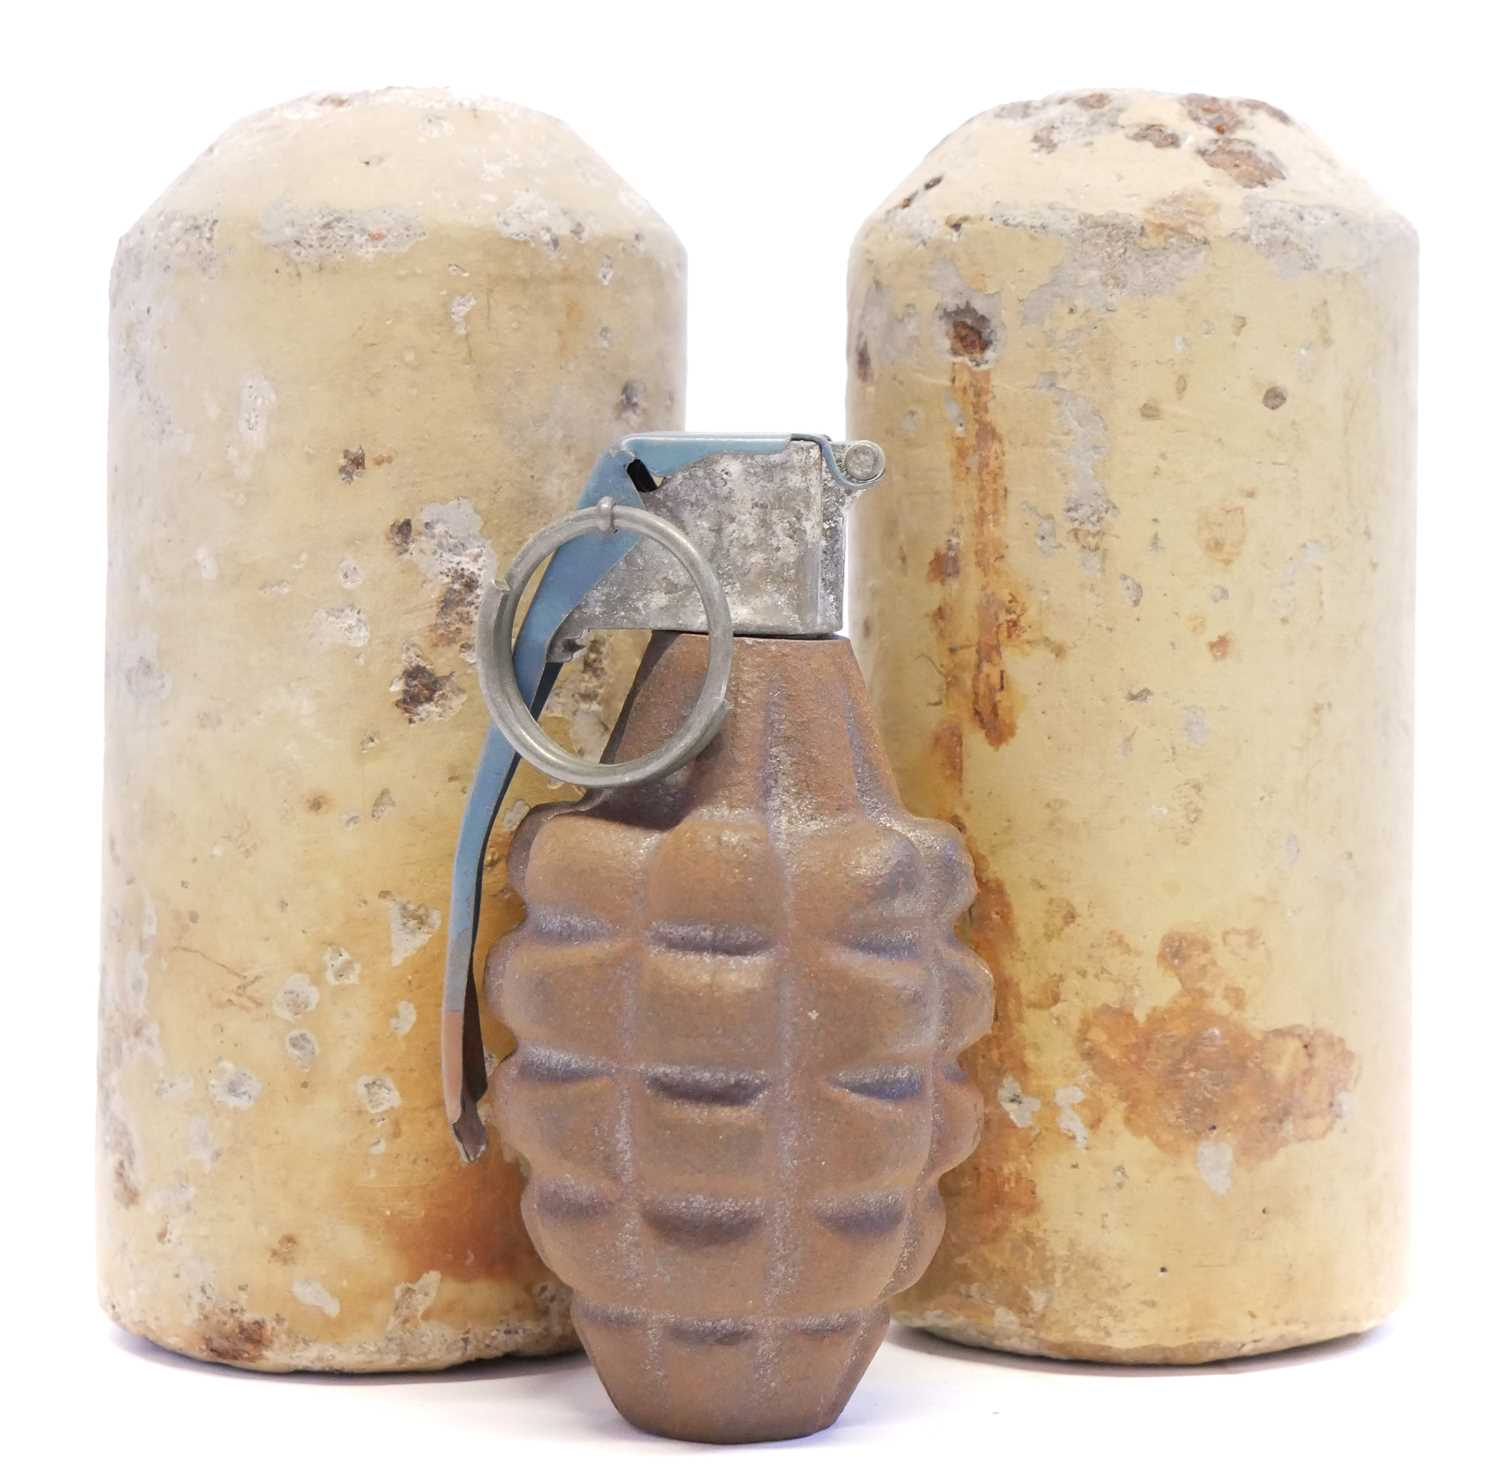 Lot 114 - WWII USA pineapple grenade and two German concrete mines or grenades